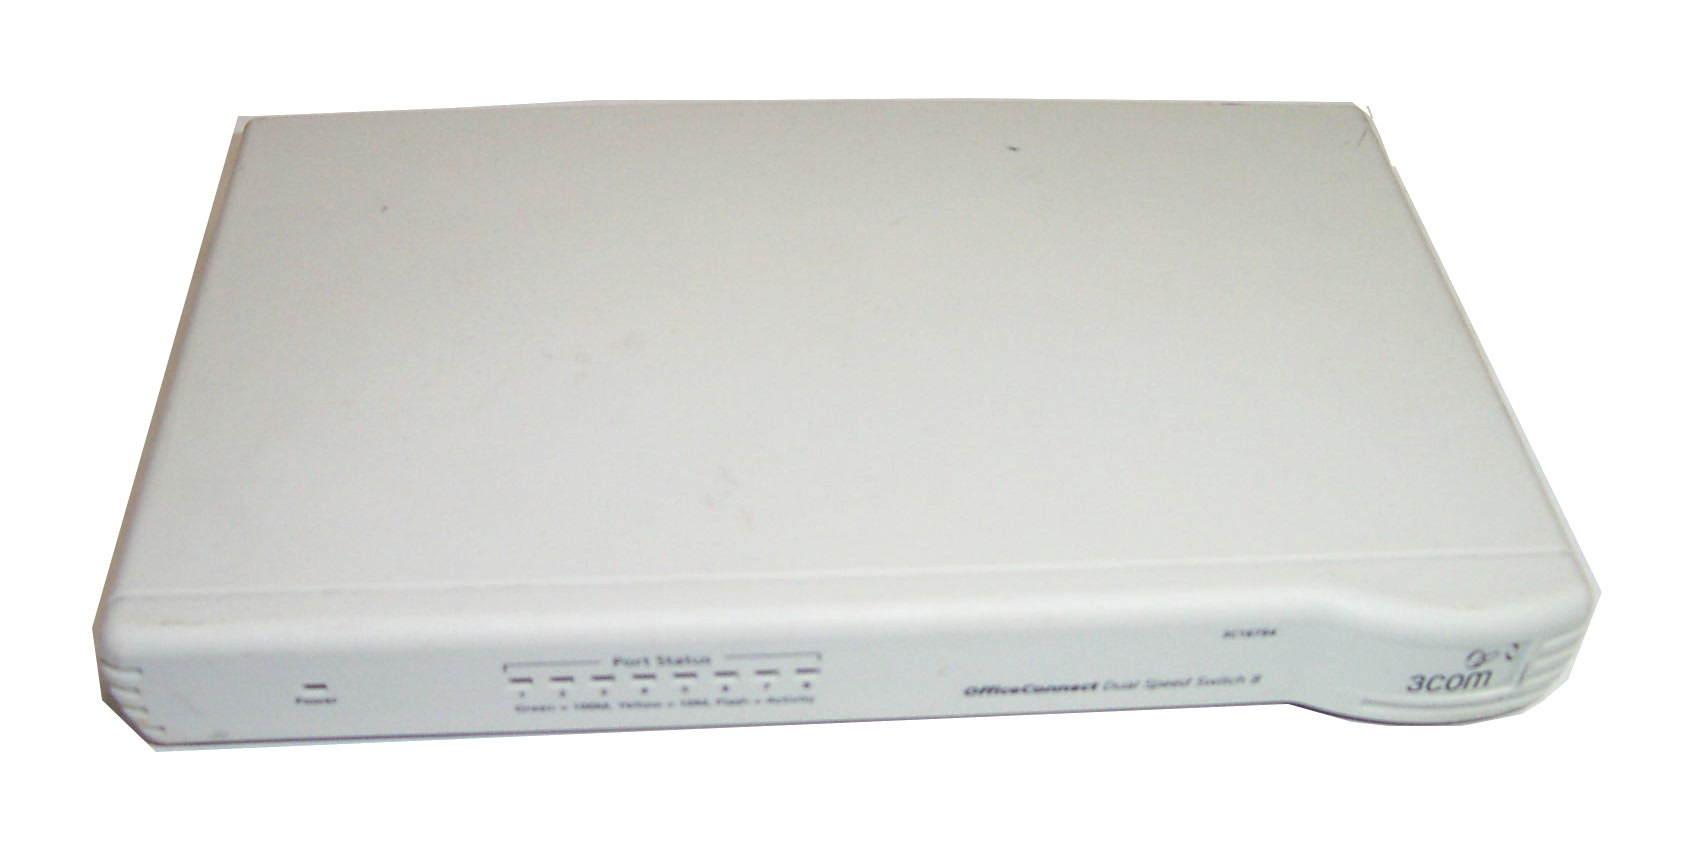 3com 3c16794 officeconnect dual speed 8 port switch no for 3 com switch